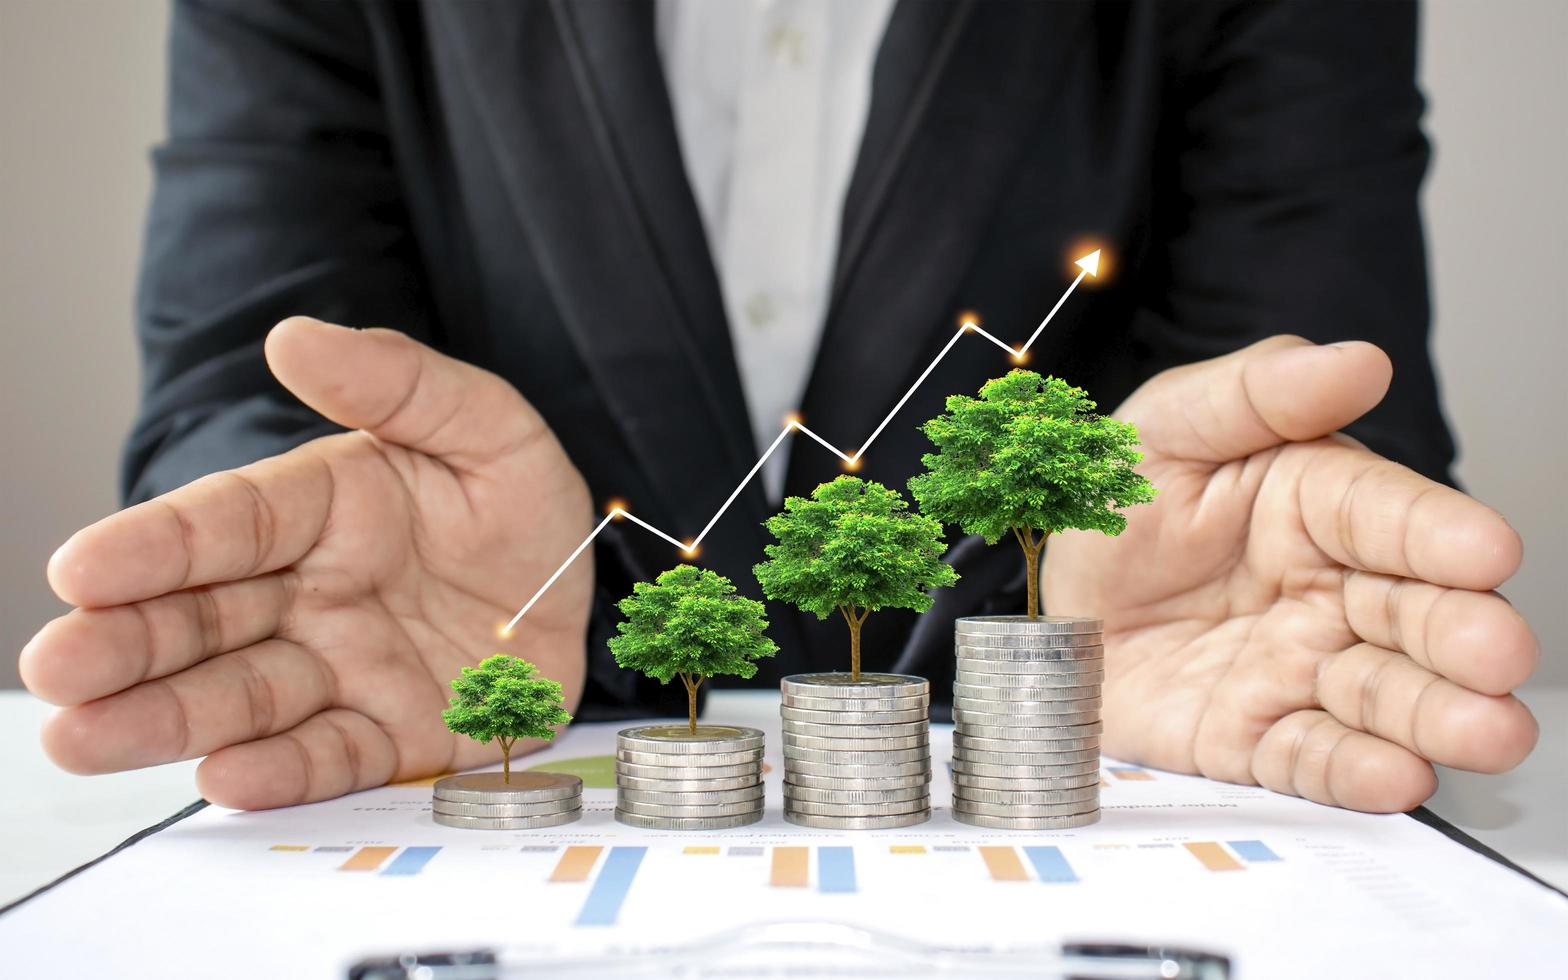 Green trees growing on coins increases, concept of business growth photo